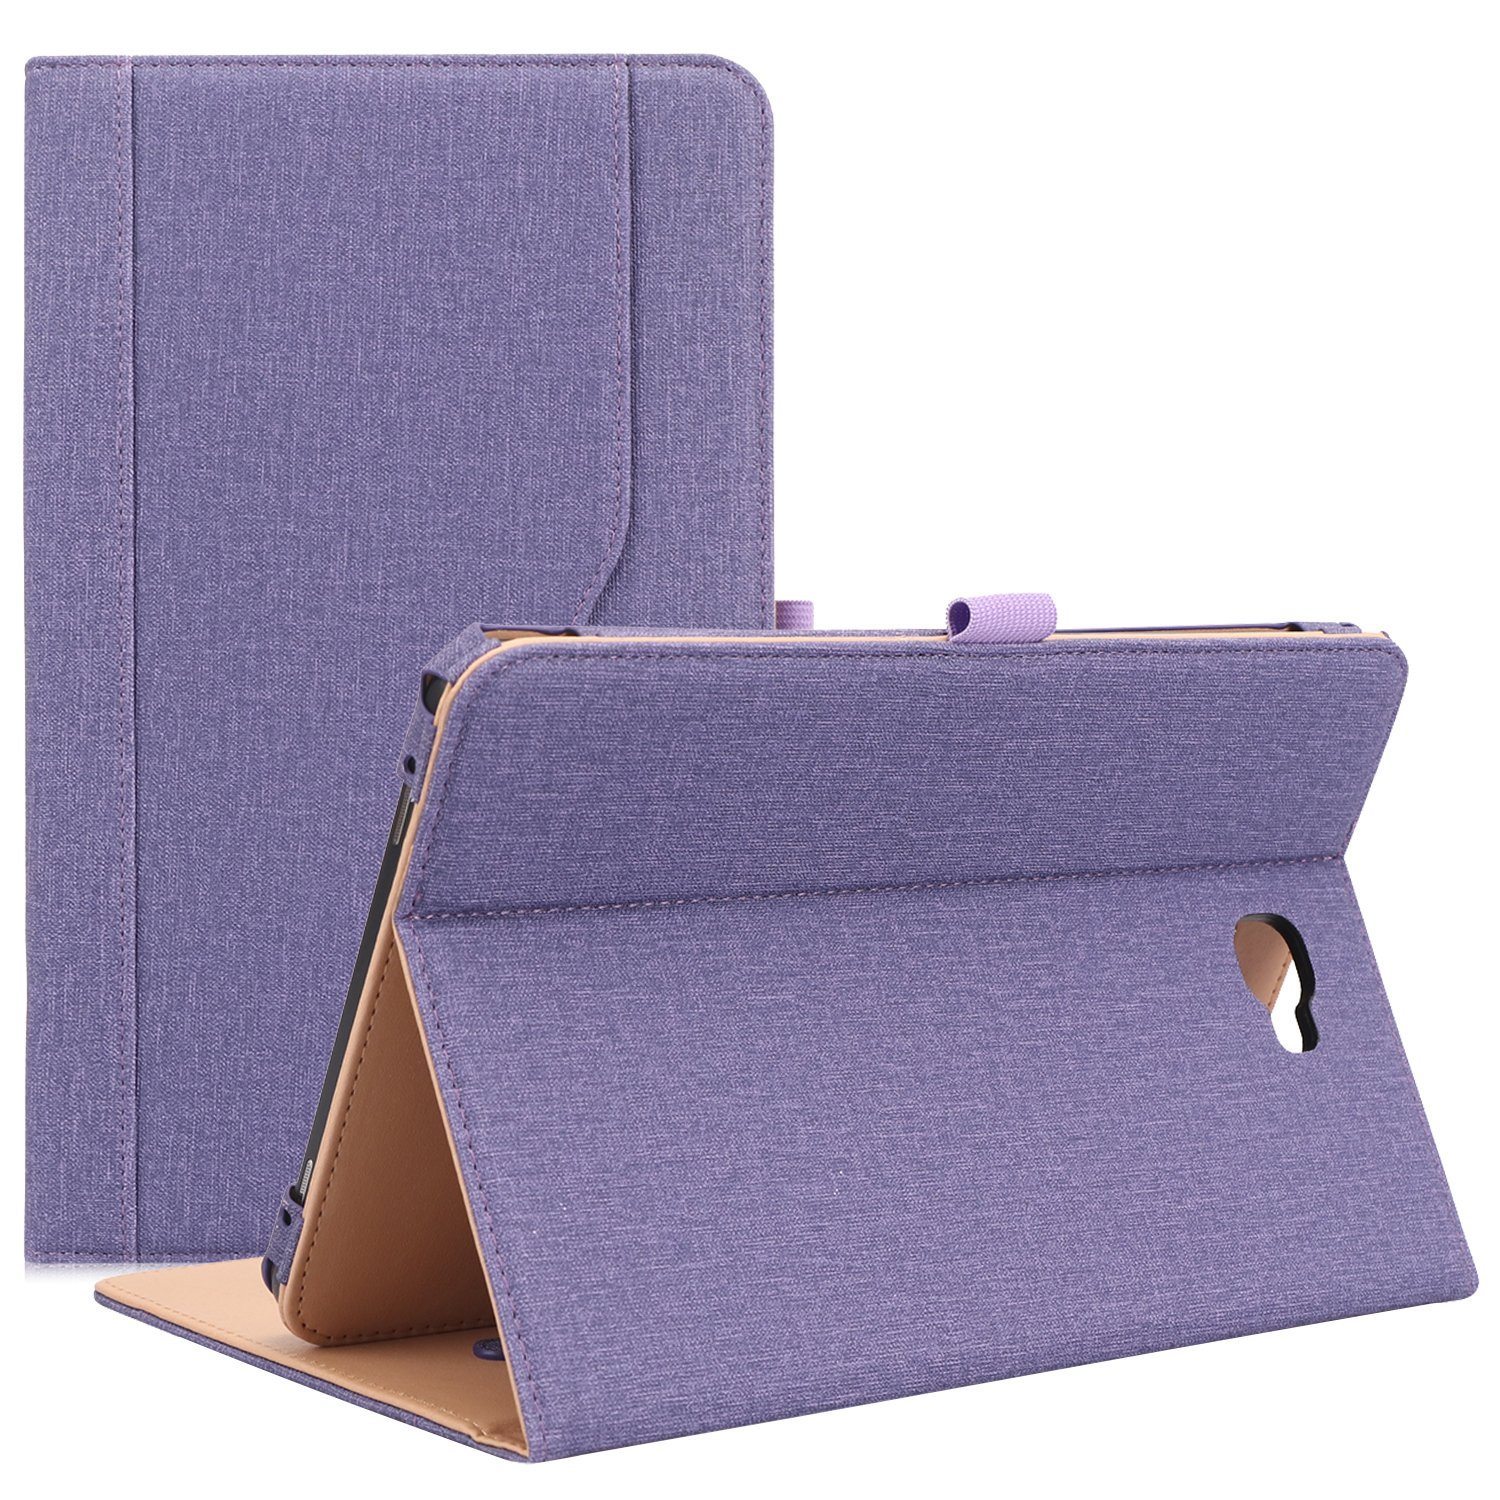 """ProCase Galaxy Tab A 10.1 Case 2016 Old Model, Stand Folio Case Cover for Galaxy Tab A 10.1"""" Tablet SM-T580 T585 T587 (NO S Pen Version) with Multiple Viewing Angles, Card Pocket -Purple"""